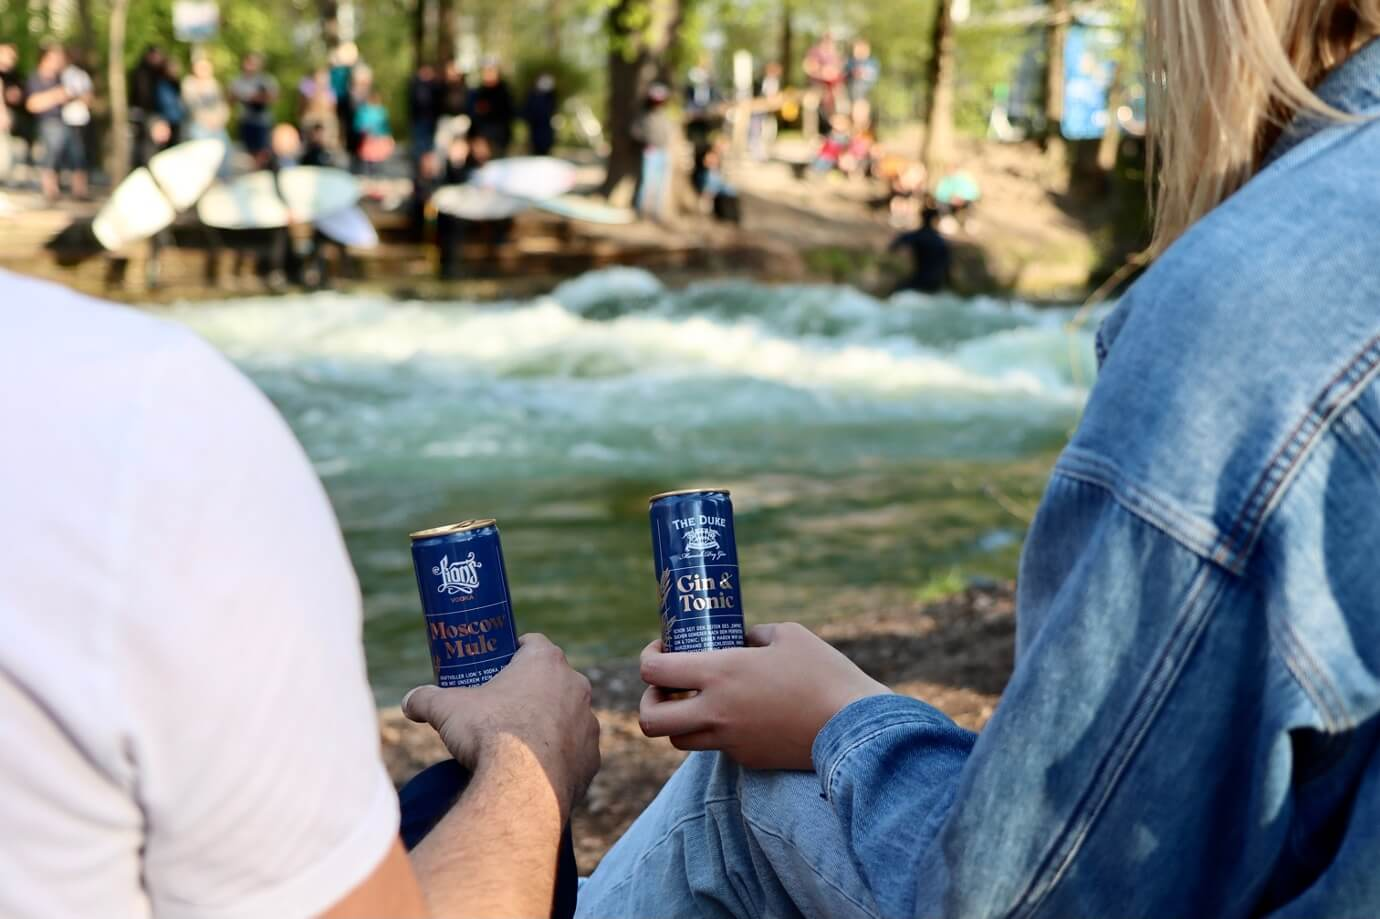 THE DUKE Gin & Tonic und LION's Moscow Mule in der Dose am Eisbach